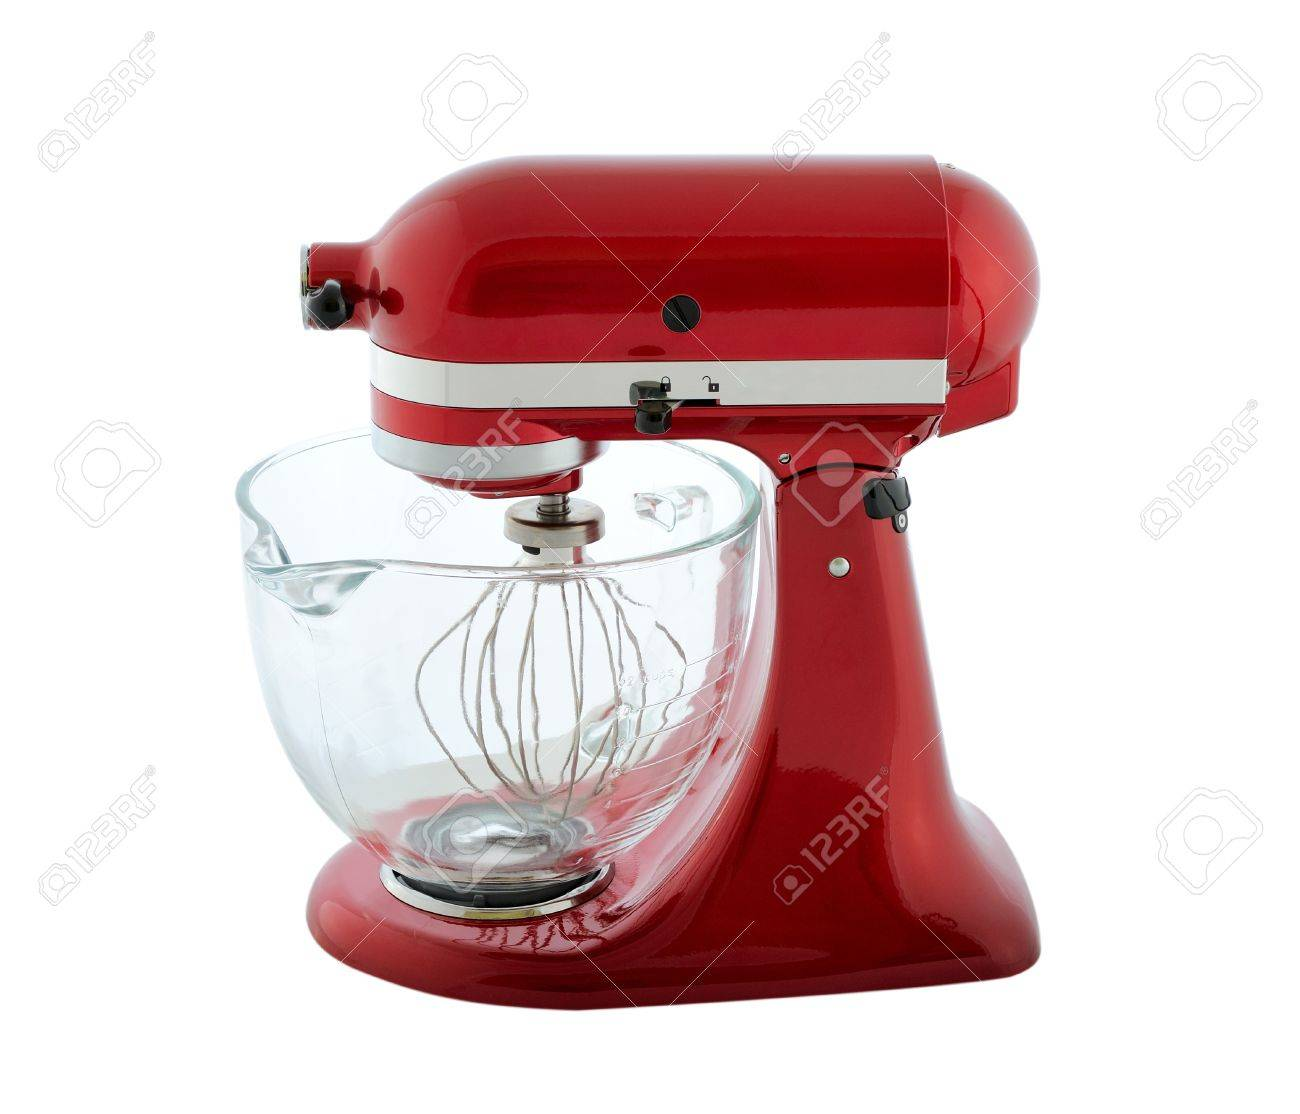 Uncategorized Mixer Kitchen Appliance kitchen appliances red planetary mixer with a transparent bowl isolated on white background